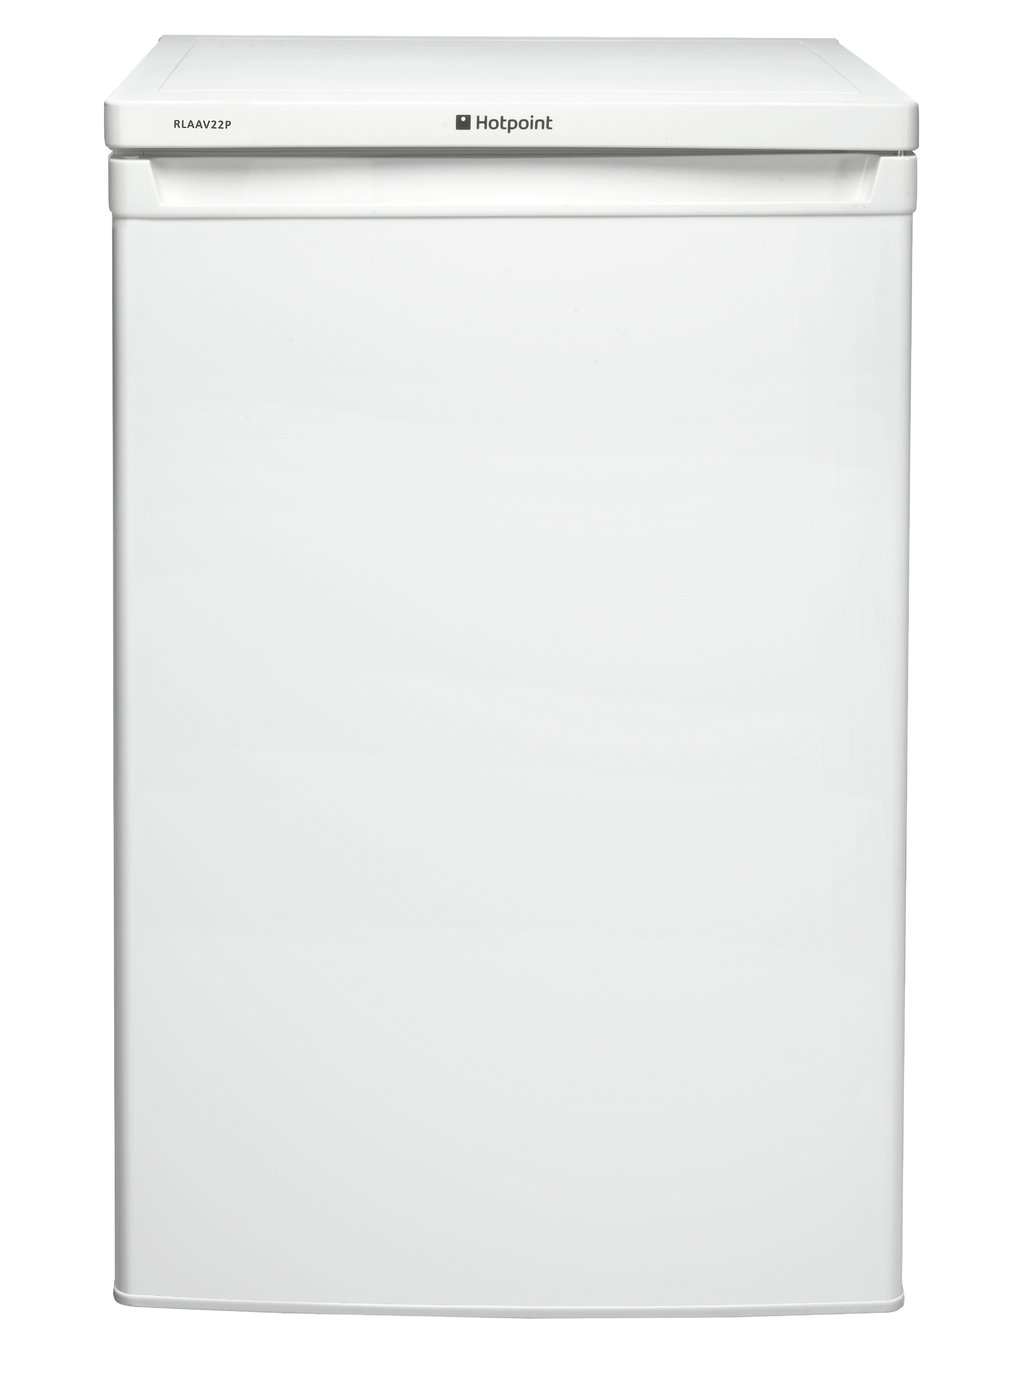 Hotpoint RLAAV22P Under Counter Fridge - White